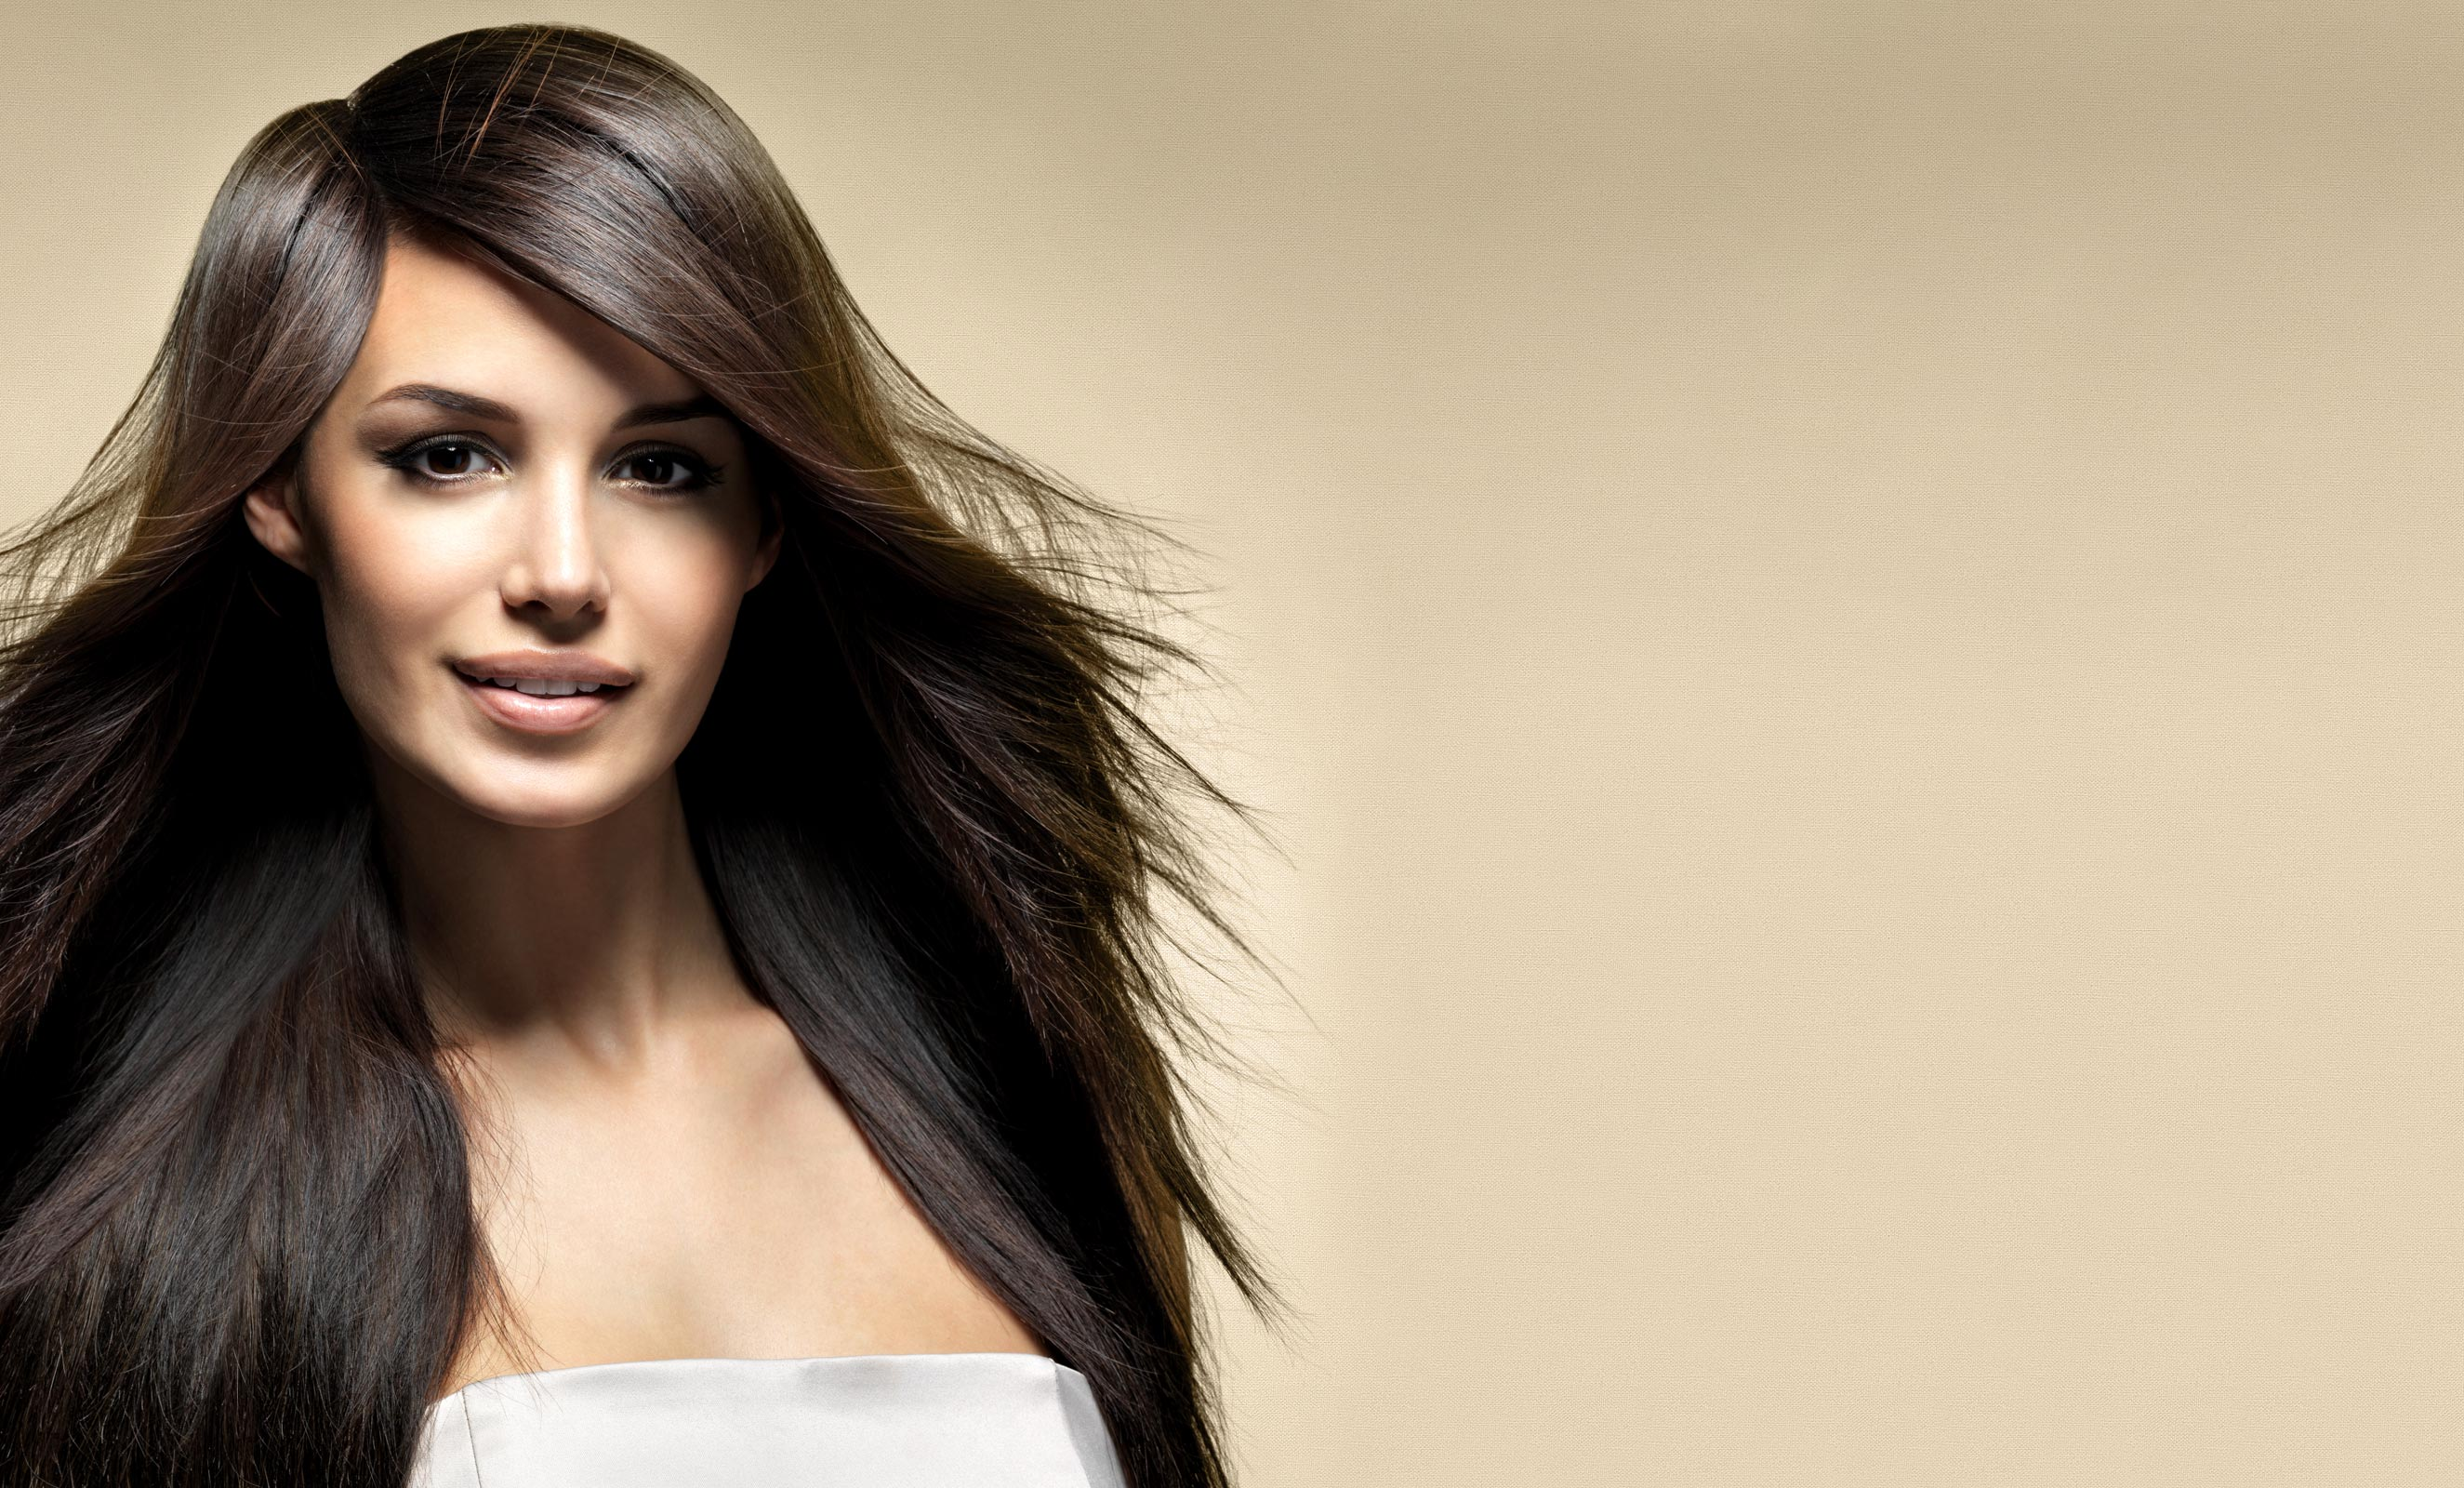 gallery for hair salon background displaying 17 images for hair salon 2650x1600